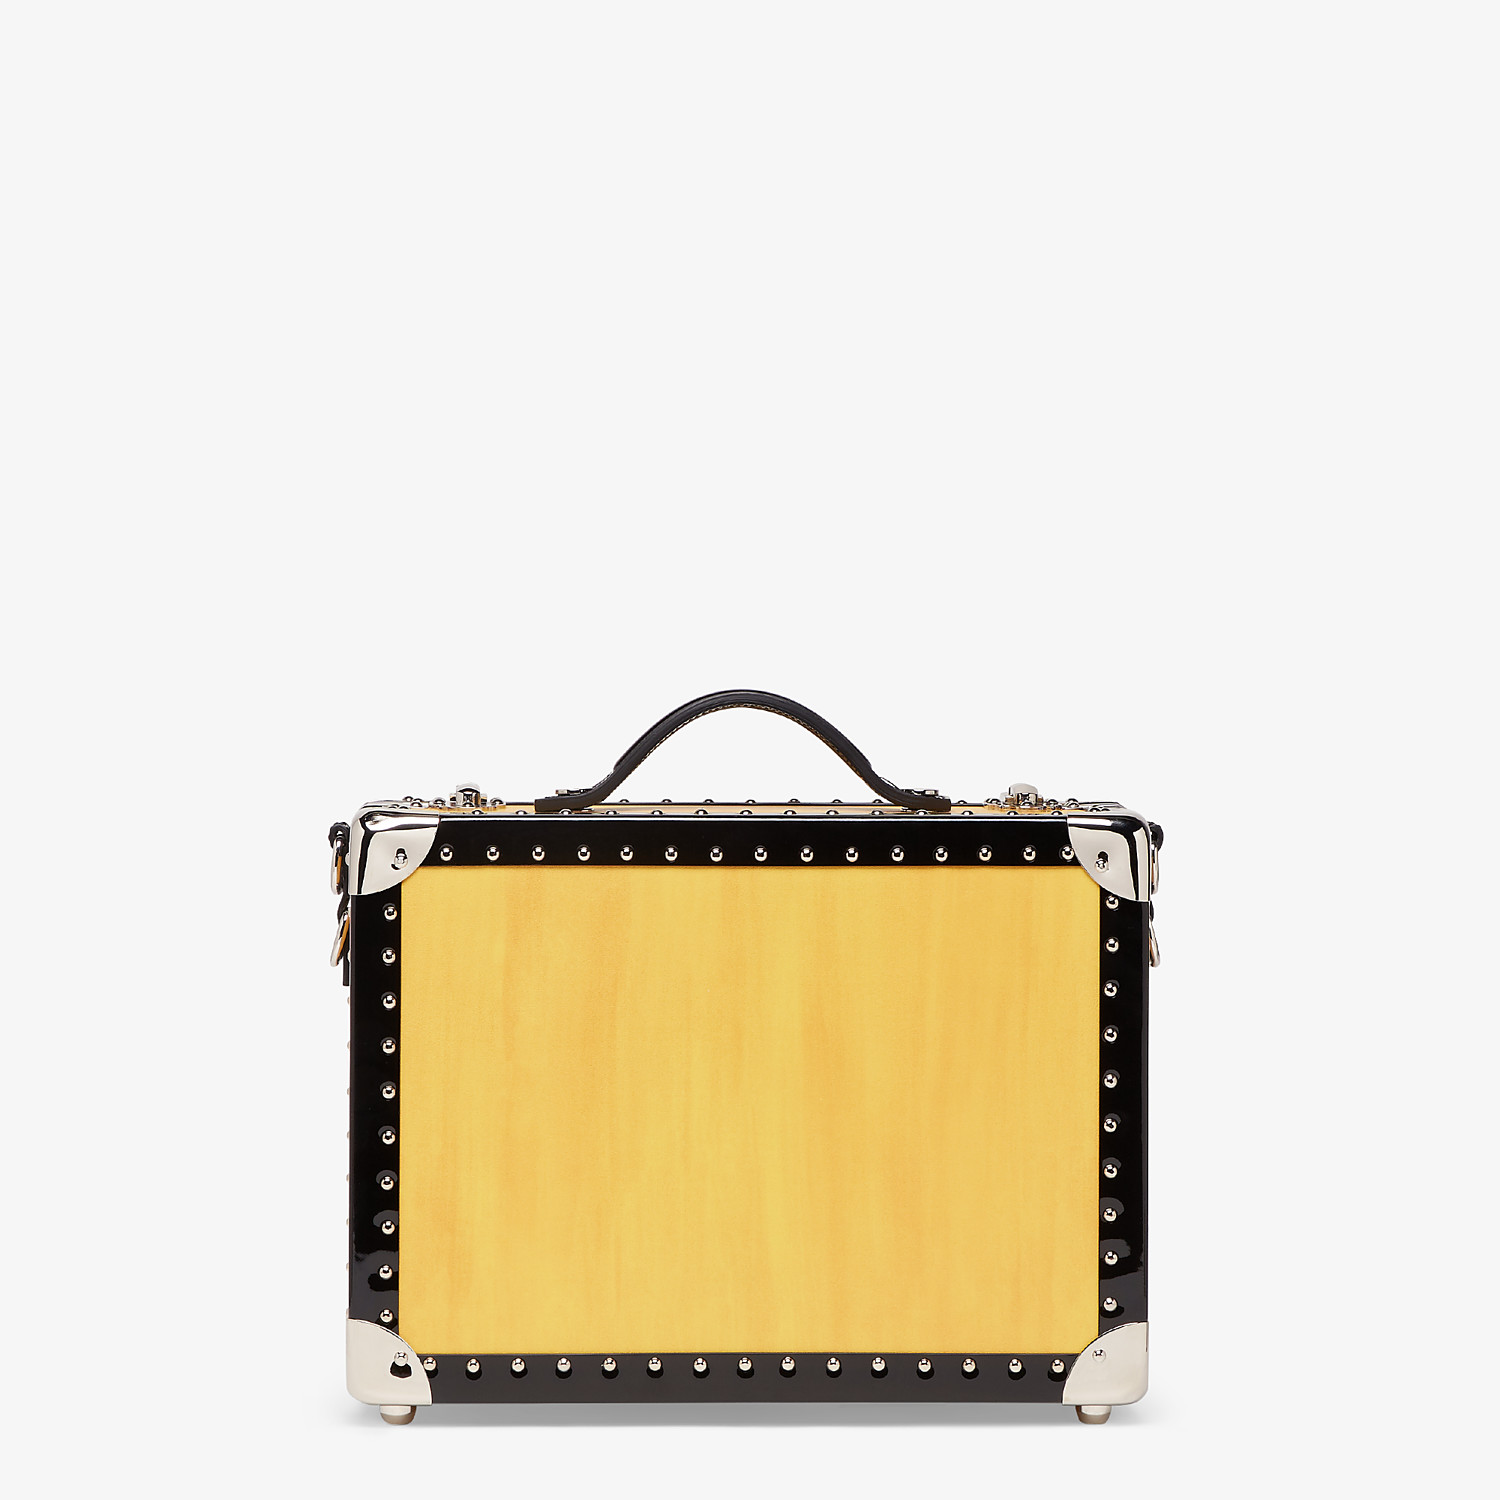 FENDI TRAVEL BAG SMALL - Yellow leather suitcase - view 3 detail